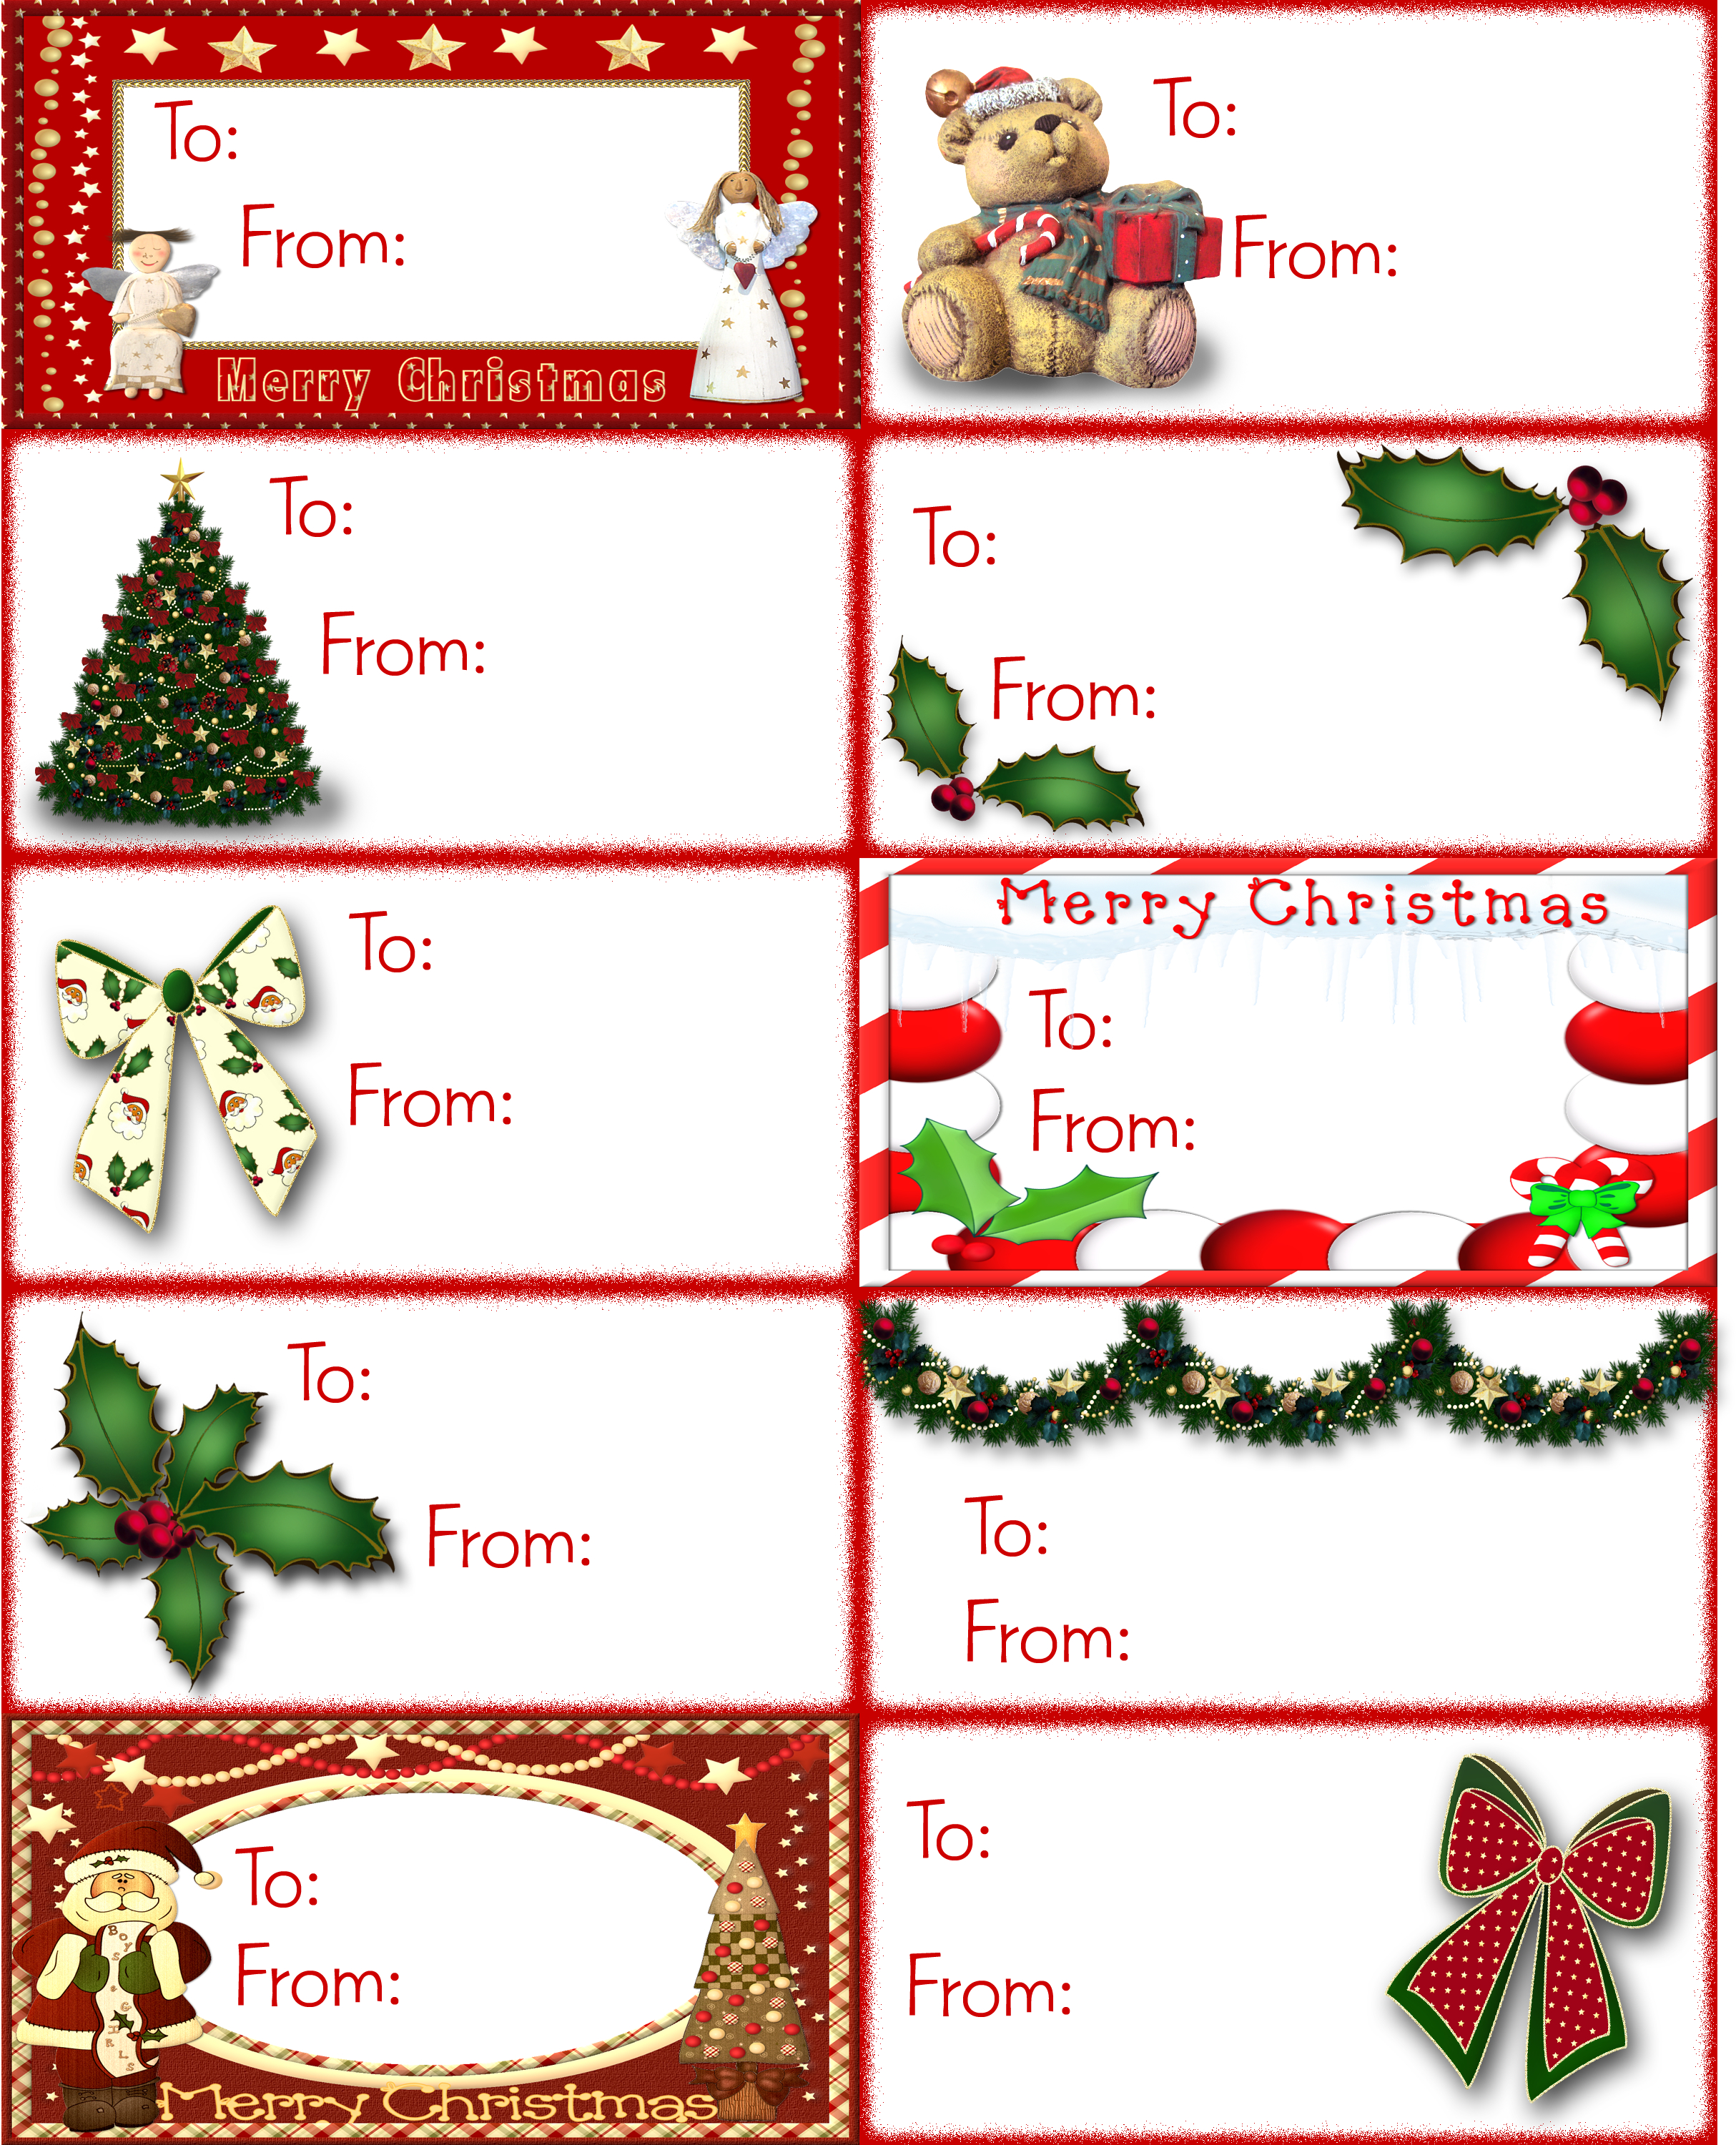 Find Tons Of Free Clip Art Images For Valentine's Day | Tags - Free Printable Gift Name Tags